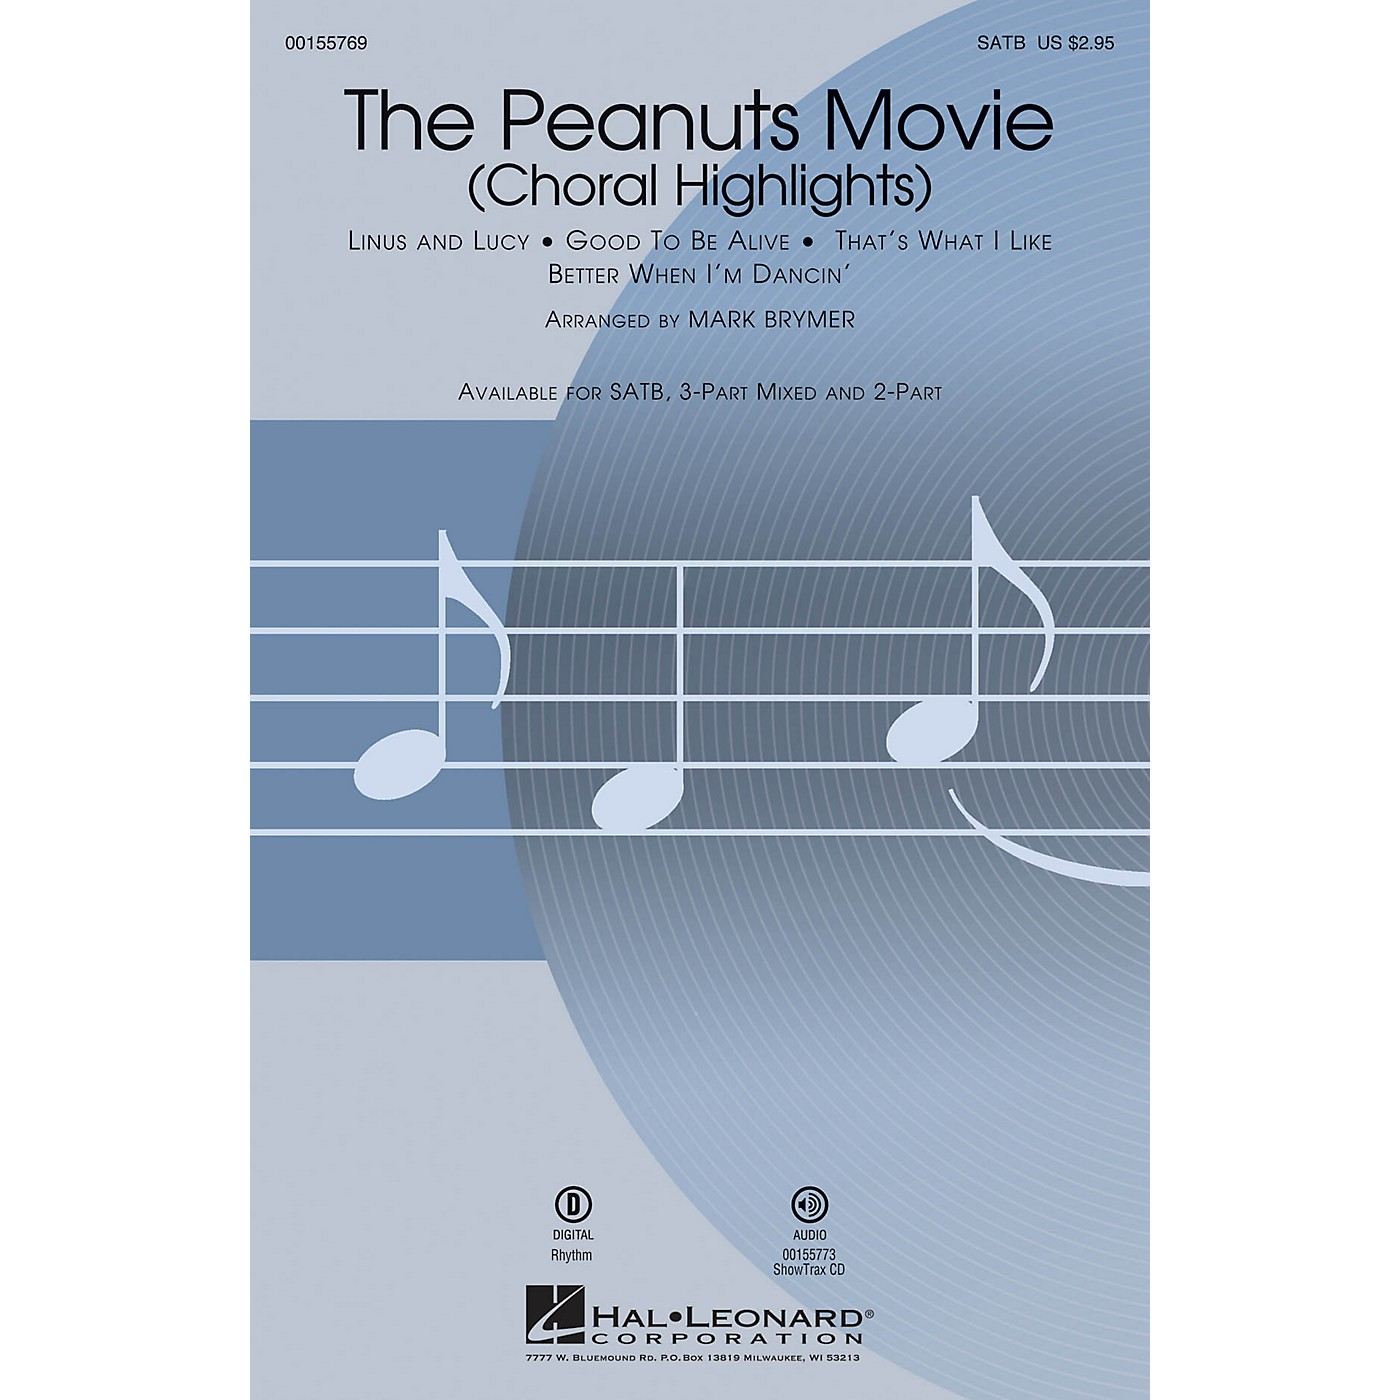 Hal Leonard The Peanuts Movie (Choral Highlights) SATB arranged by Mark Brymer thumbnail